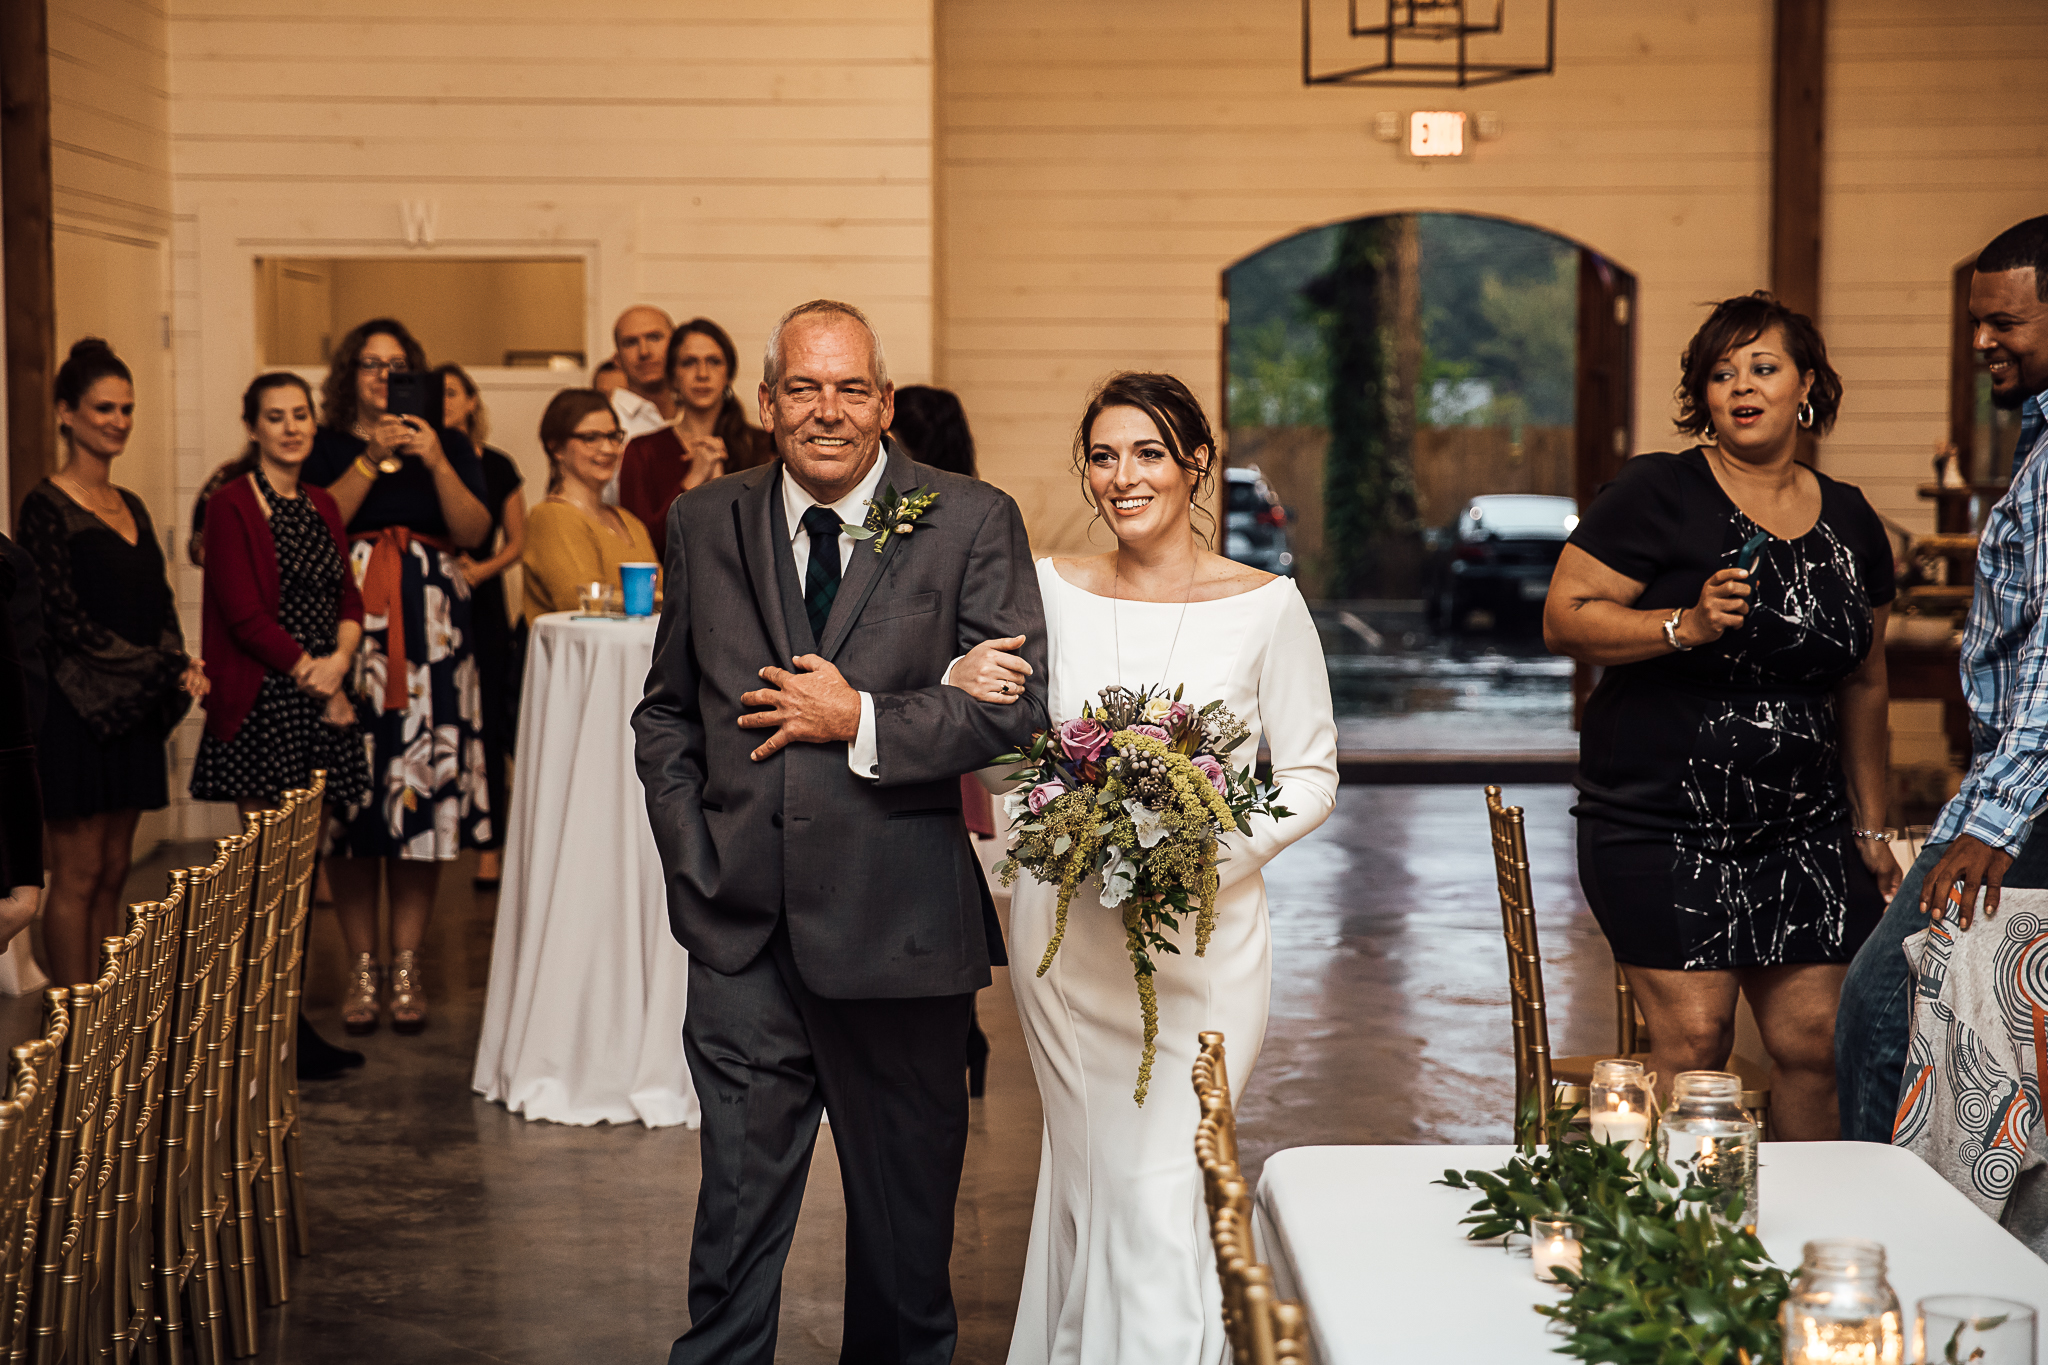 Caitlin-and-Bryan-Avon-Acres-Memphis-TN-Wedding-132.jpg